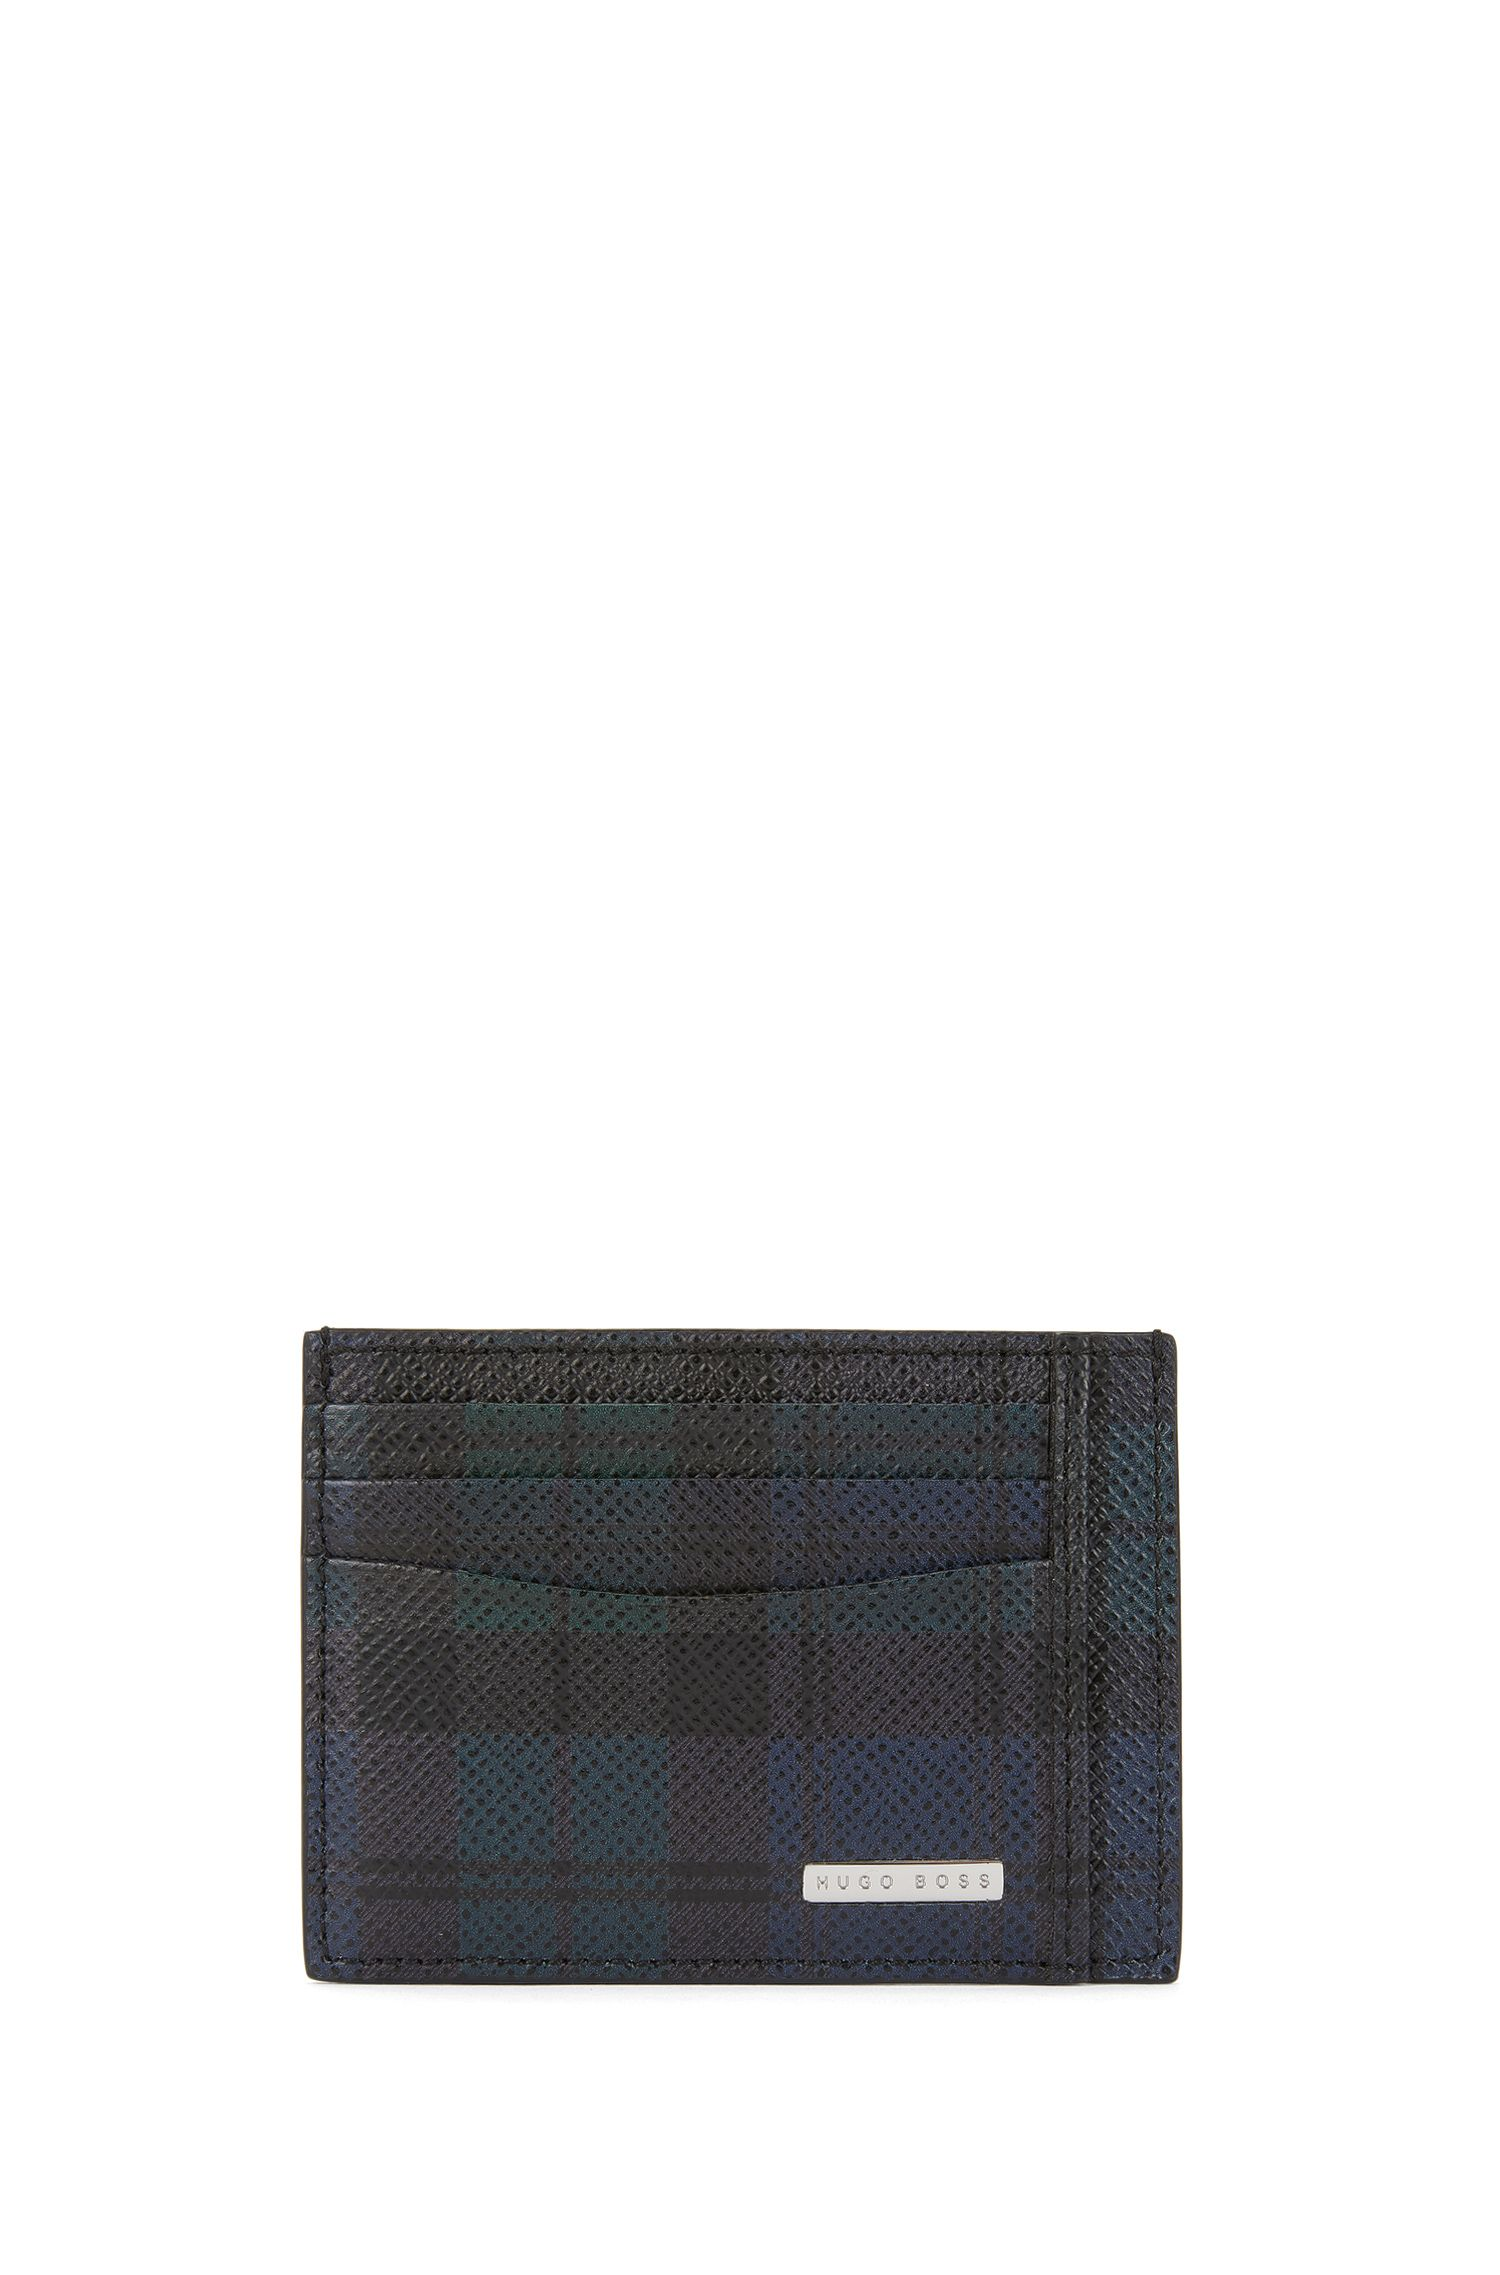 Black Watch Leather Card Holder | Signature BW S Card